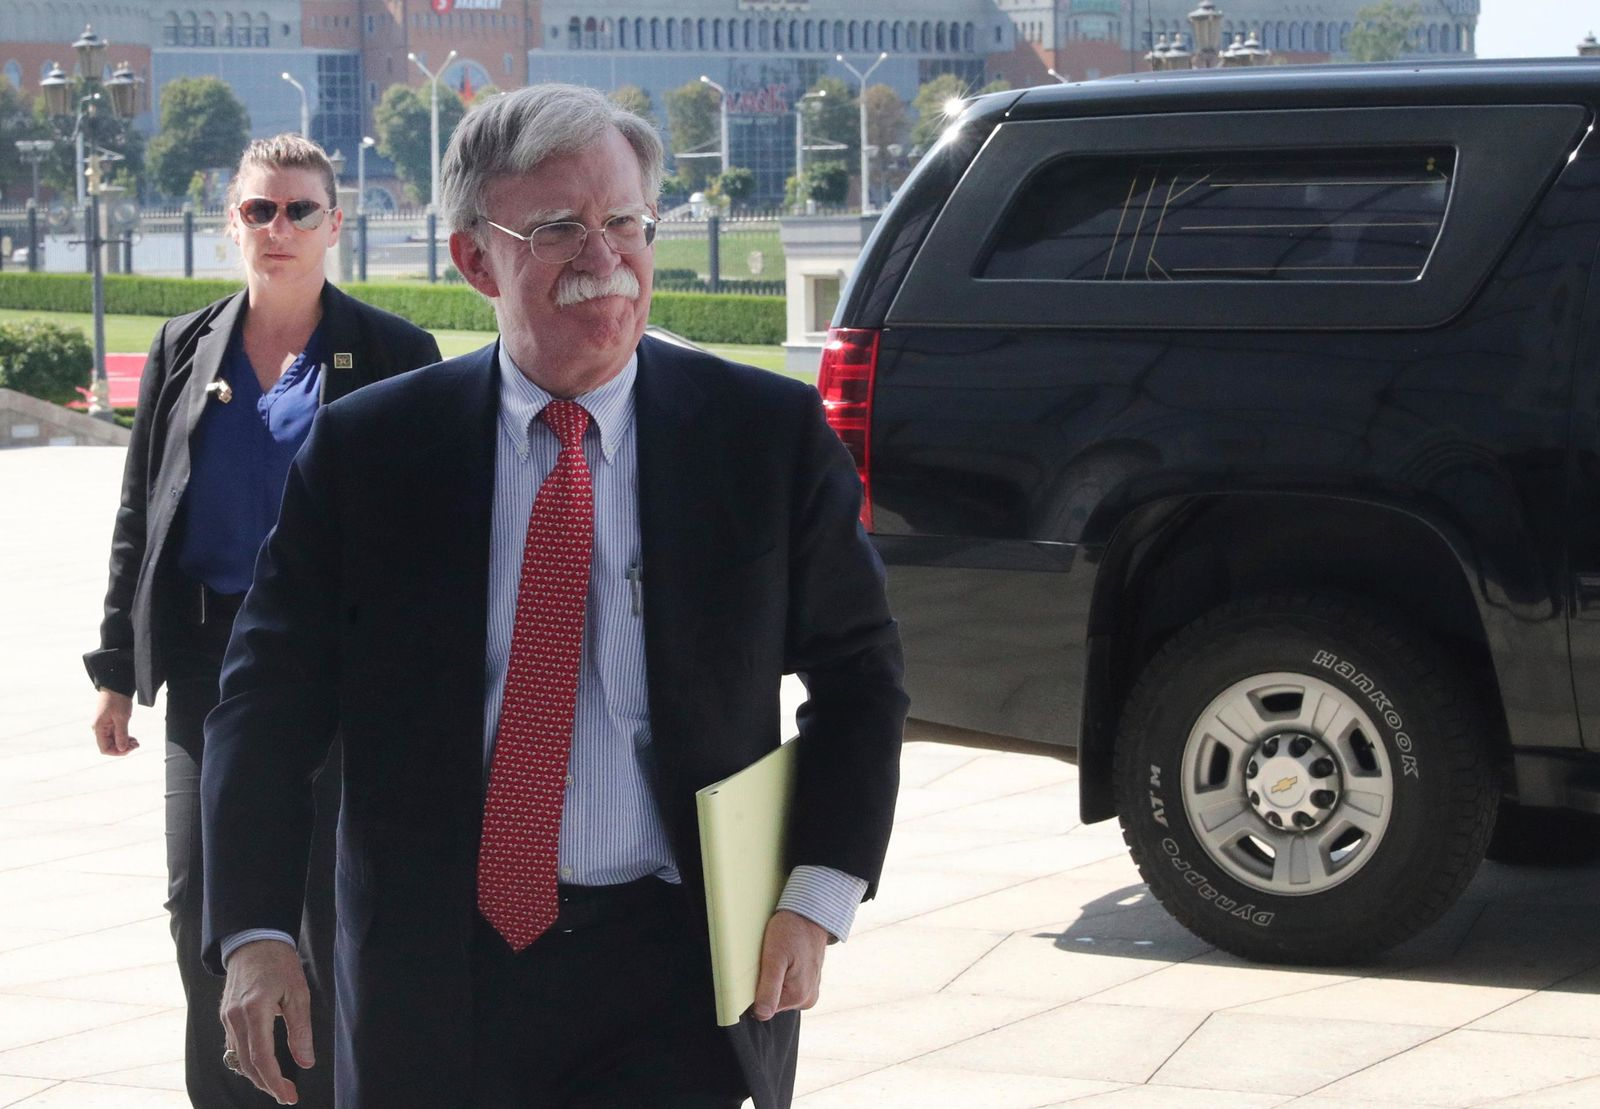 John Bolton, US National Security Advisor, arrives for a meeting with Belarusian President Alexander Lukashenko in Minsk, Belarus, Thursday, Aug. 29, 2019. (Nikolai Petrov/BelTA Pool Photo via AP)